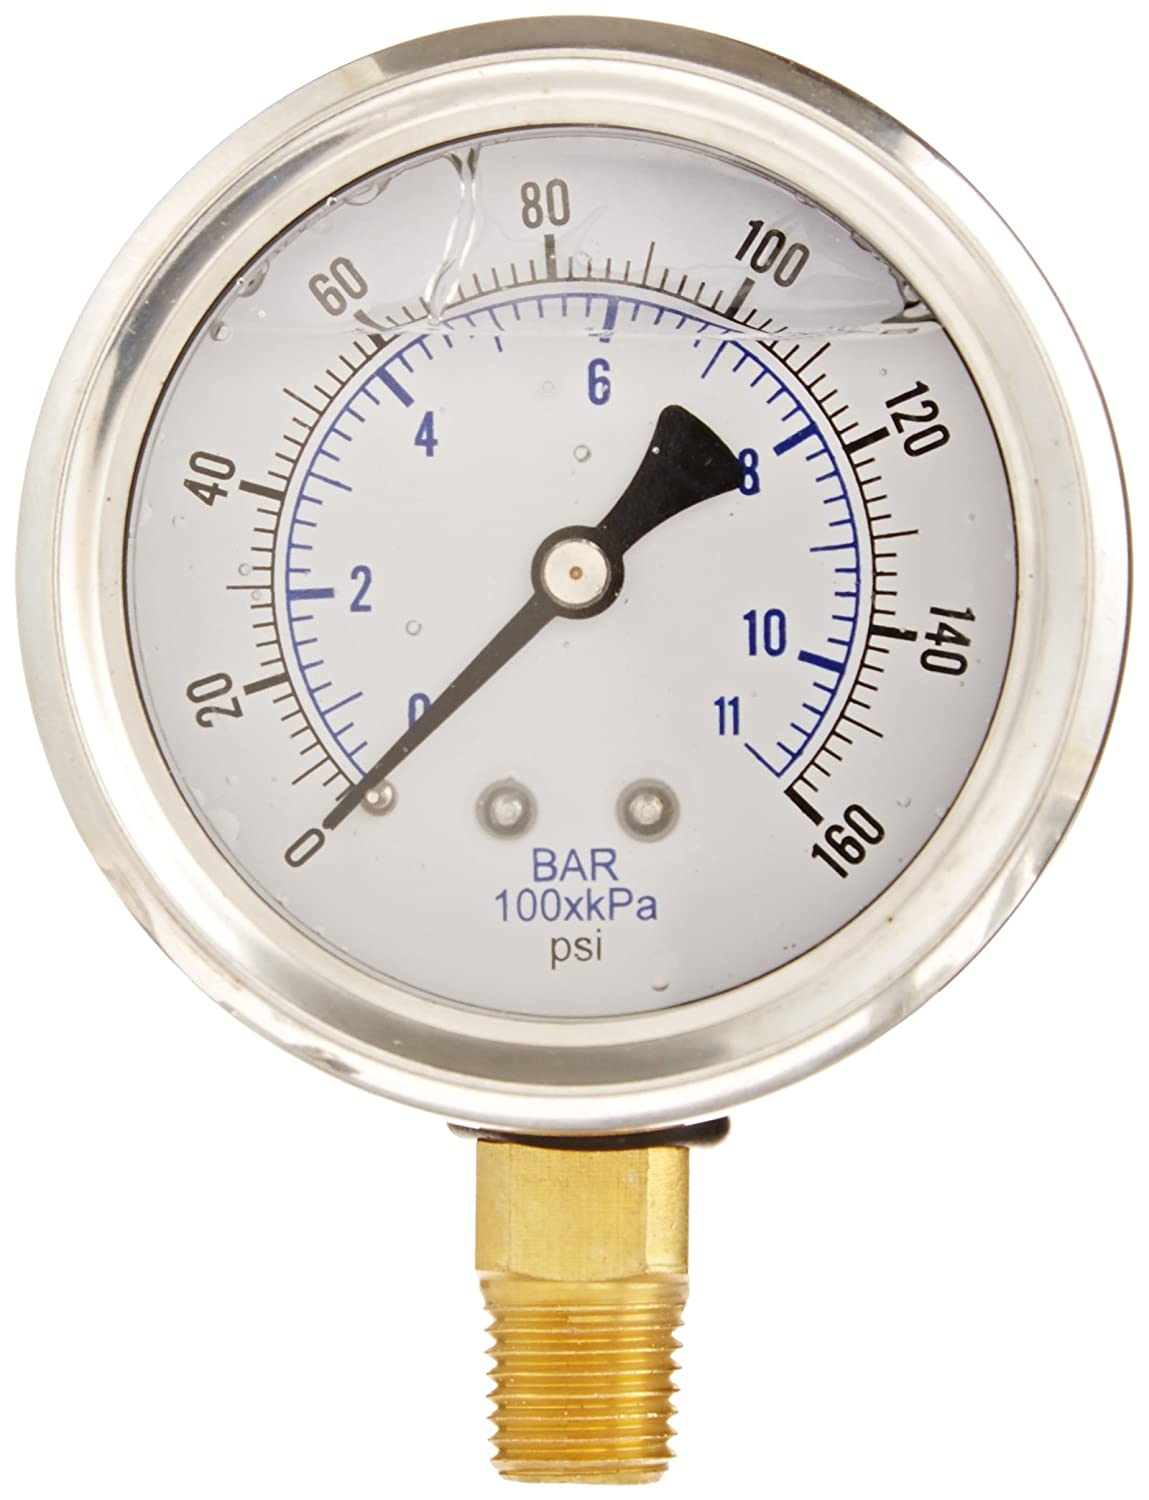 PIC Gauge PRO 201L 254F Glycerin Filled Industrial Bottom Mount Pressure Gauge with Stainless Steel Case Brass Internals Plastic Lens 2 1 2 Dial Size 1 4 Male NPT 0 160 psi